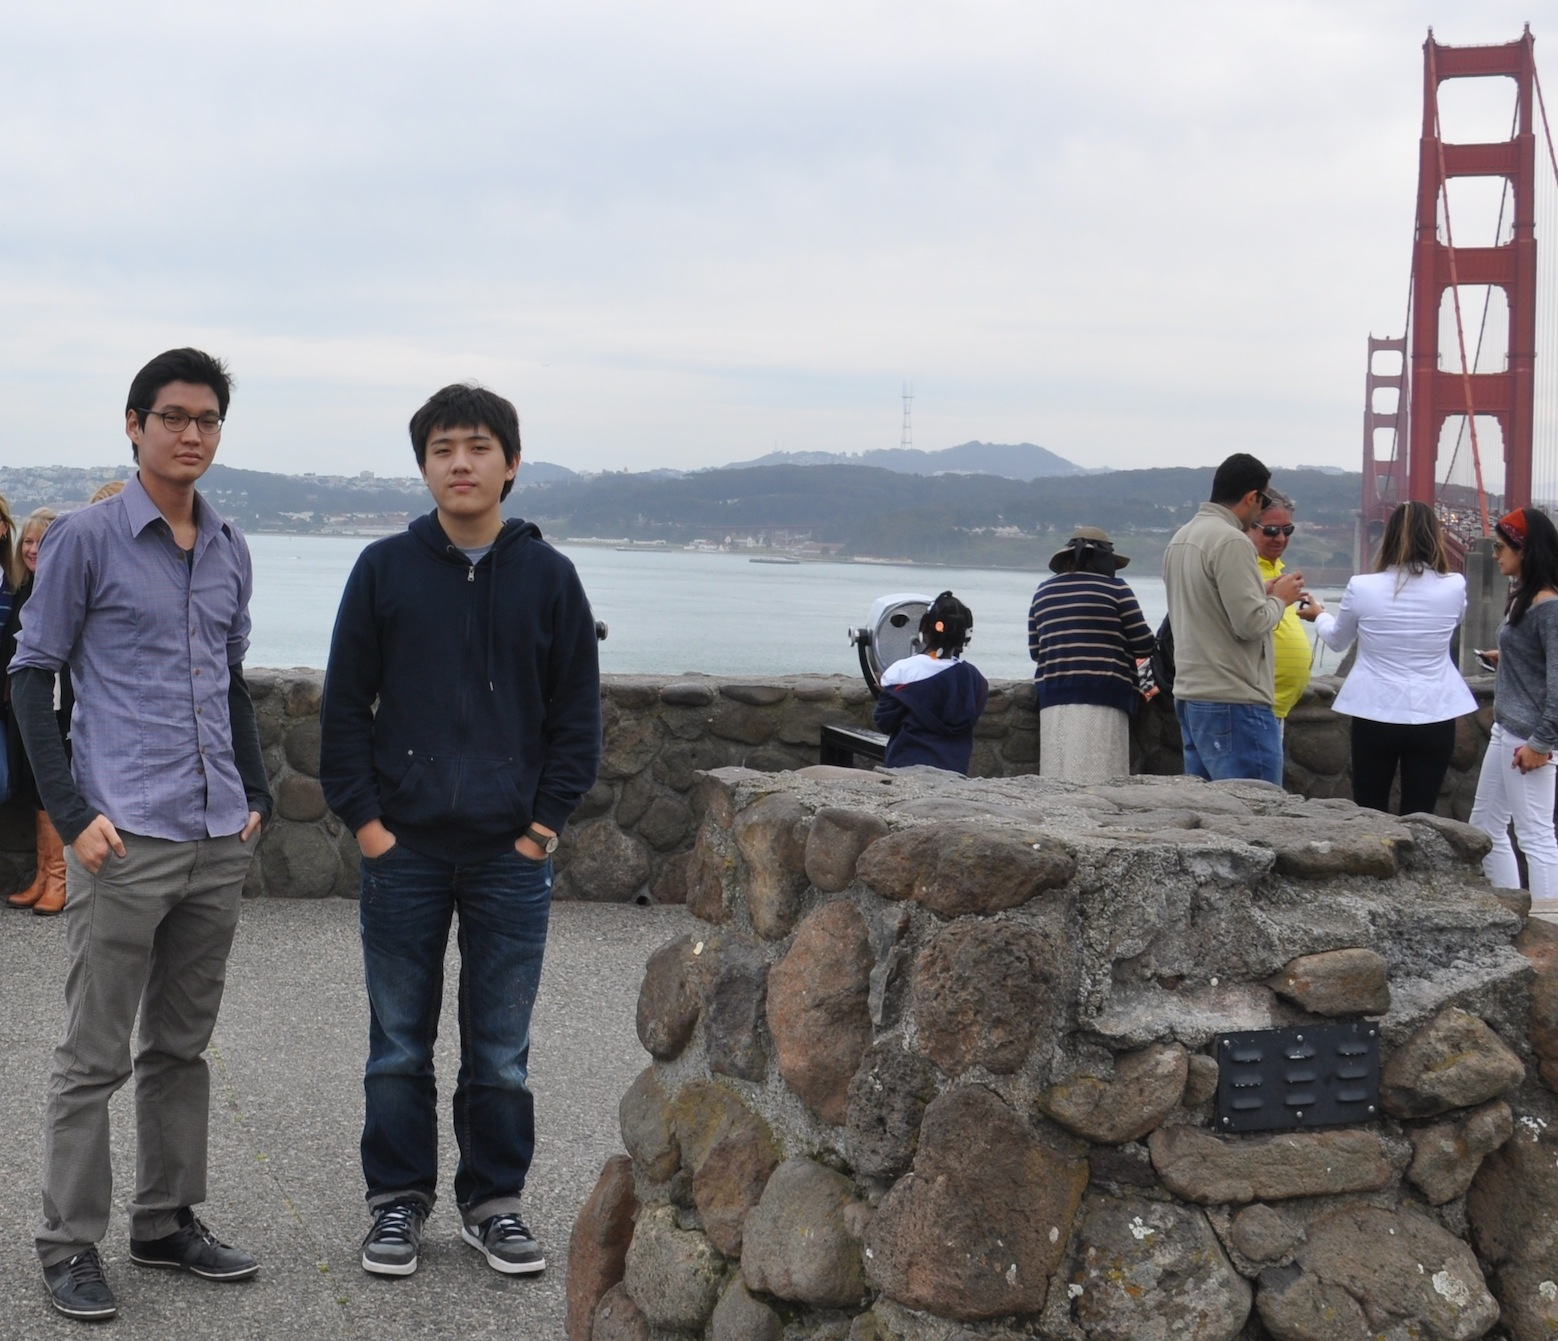 Khonger Enkhbold and Khasan Bold have their picture taken by San Francisco's Golden Gate Bridge during their trip to high-tech companies.